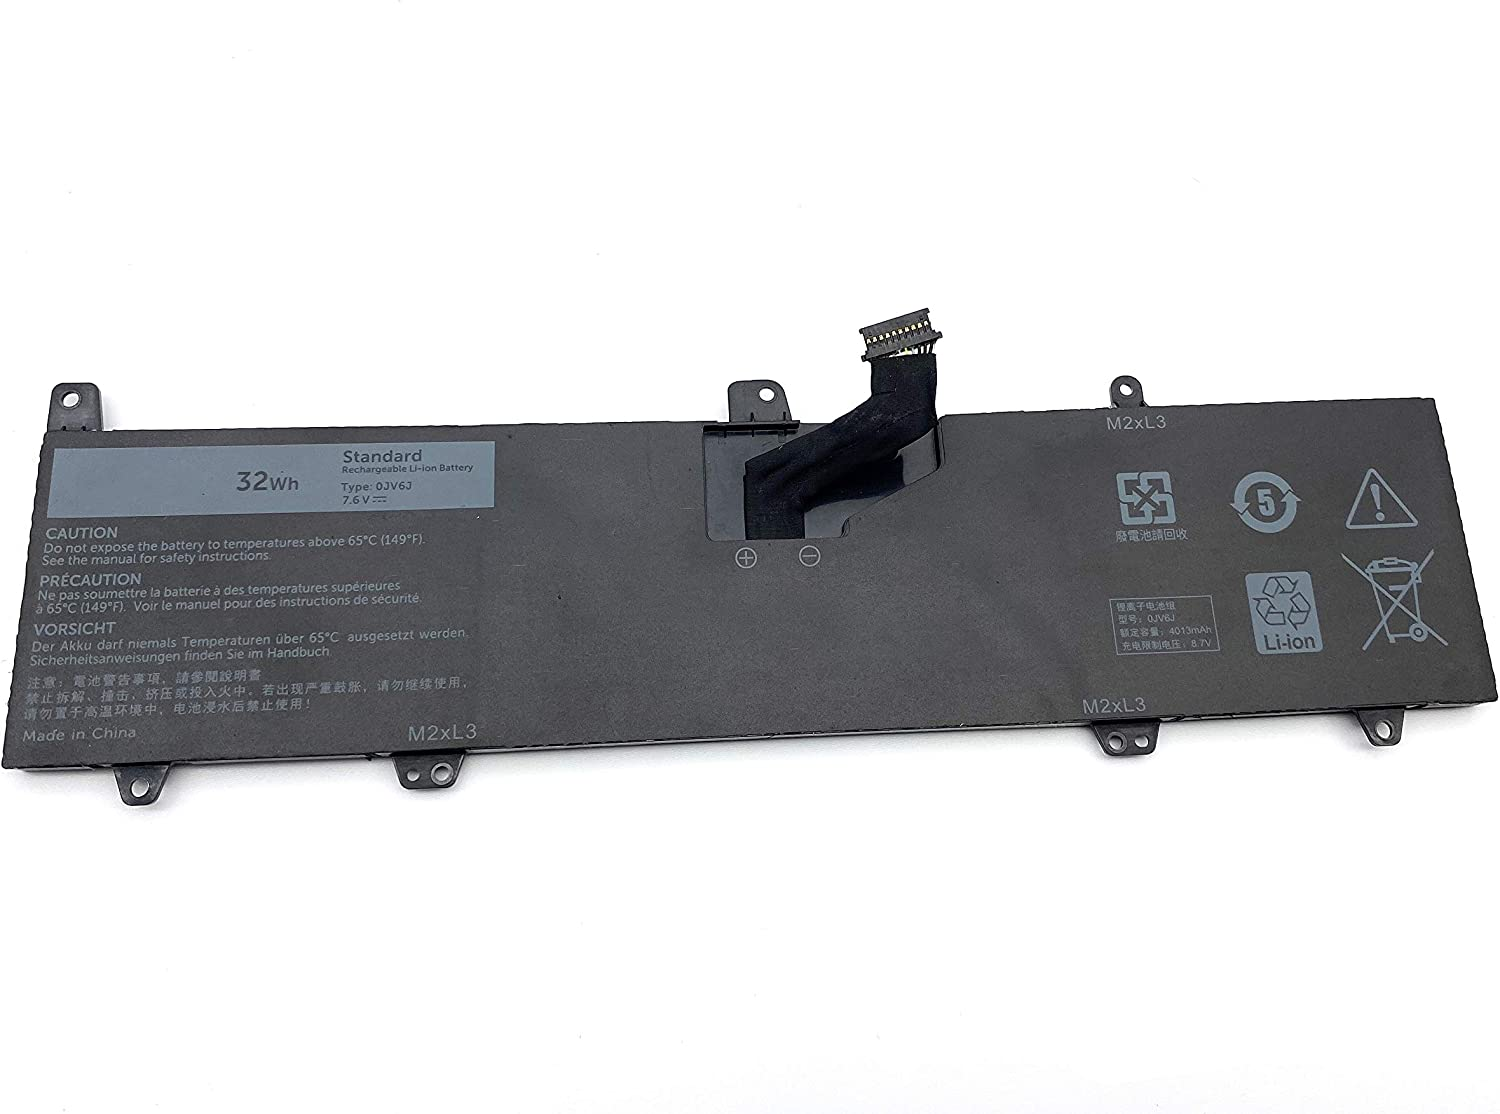 ENHONGFENG 0JV6J 7.6V32Wh Replacement Laptop Battery for Dell Inspiron 11 3162 Inspiron 11 3164 Inspiron 11 3168 Series